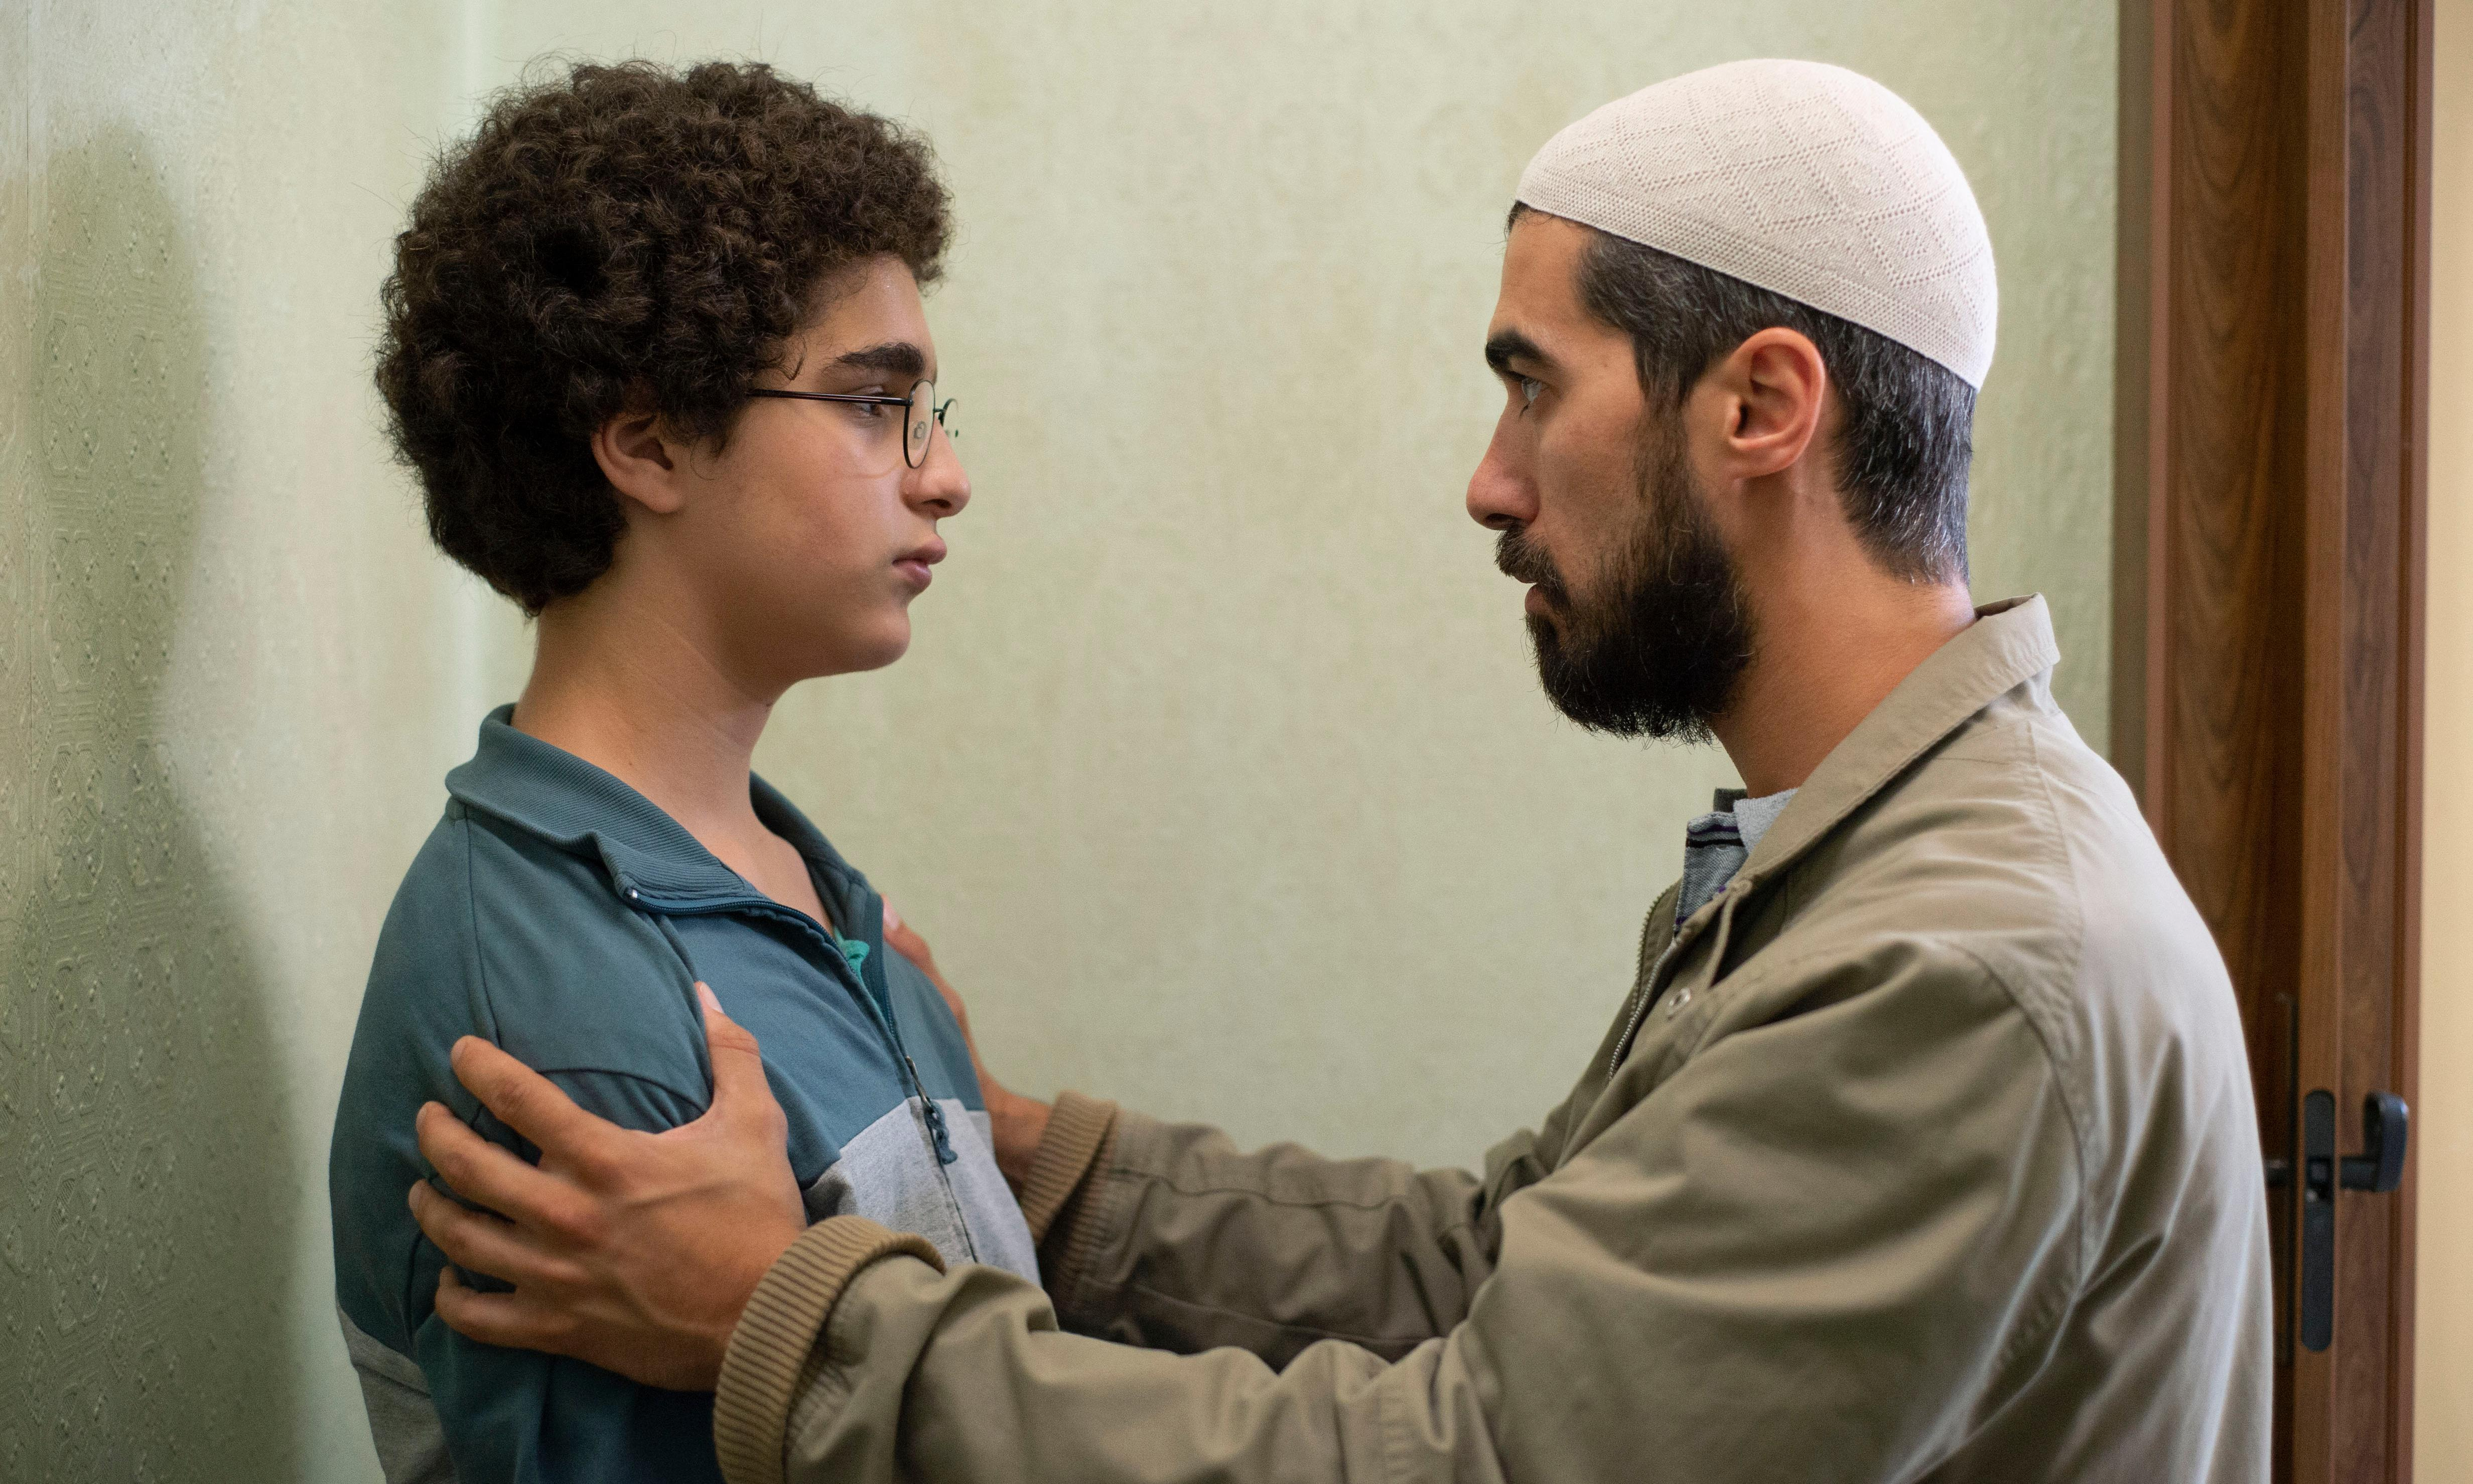 Young Ahmed review – subtle and timely tale of radicalisation